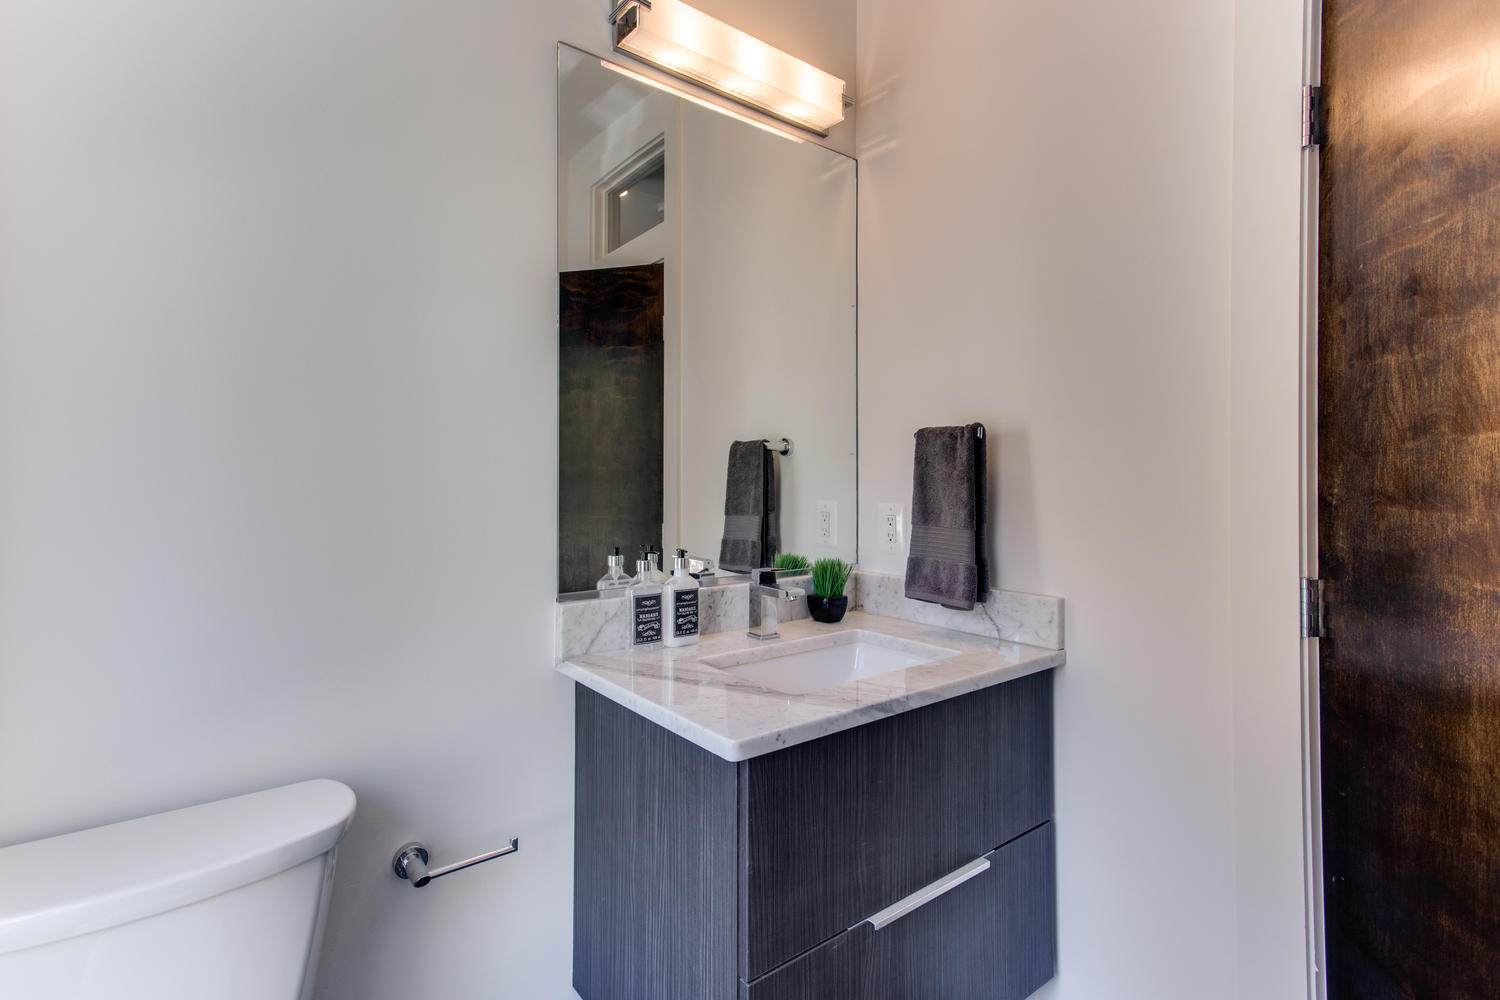 1524 Ogden St NW Unit 2-large-026-42-Bathroom-1500x1000-72dpi.jpg